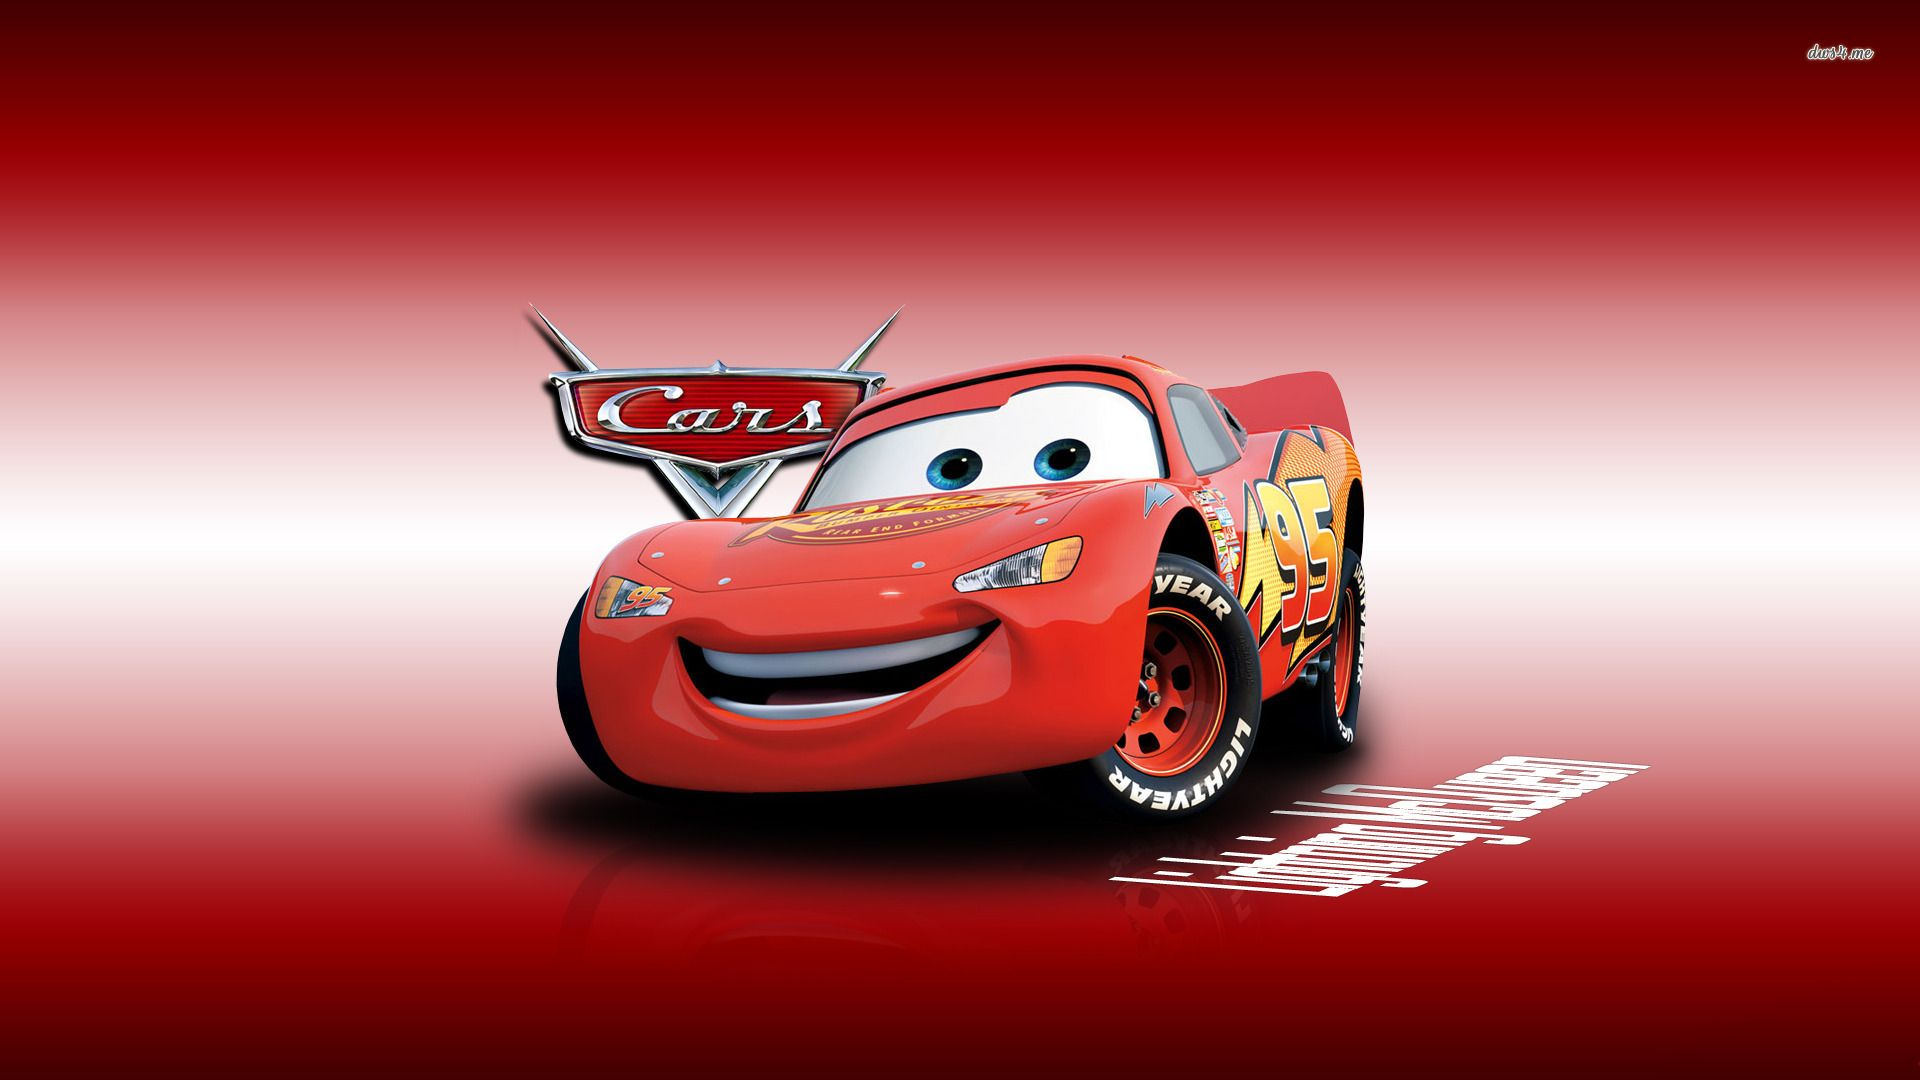 disney cars hd wallpapers - photo #15